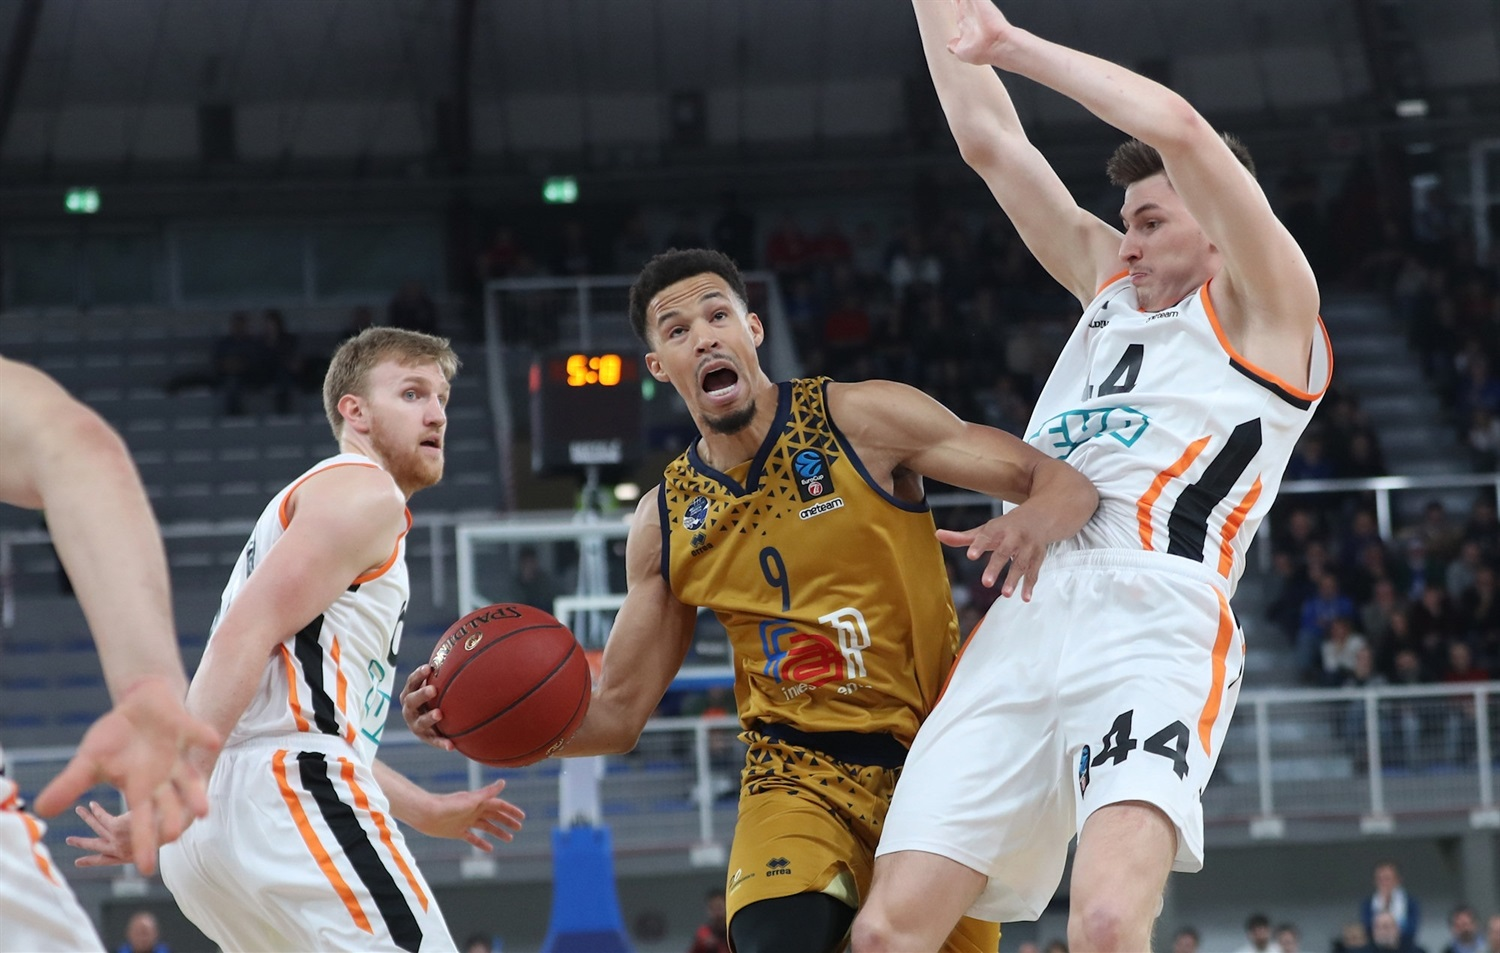 Jared Cunningham - Germani Brescia Leonessa (photo Brescia) - EC18